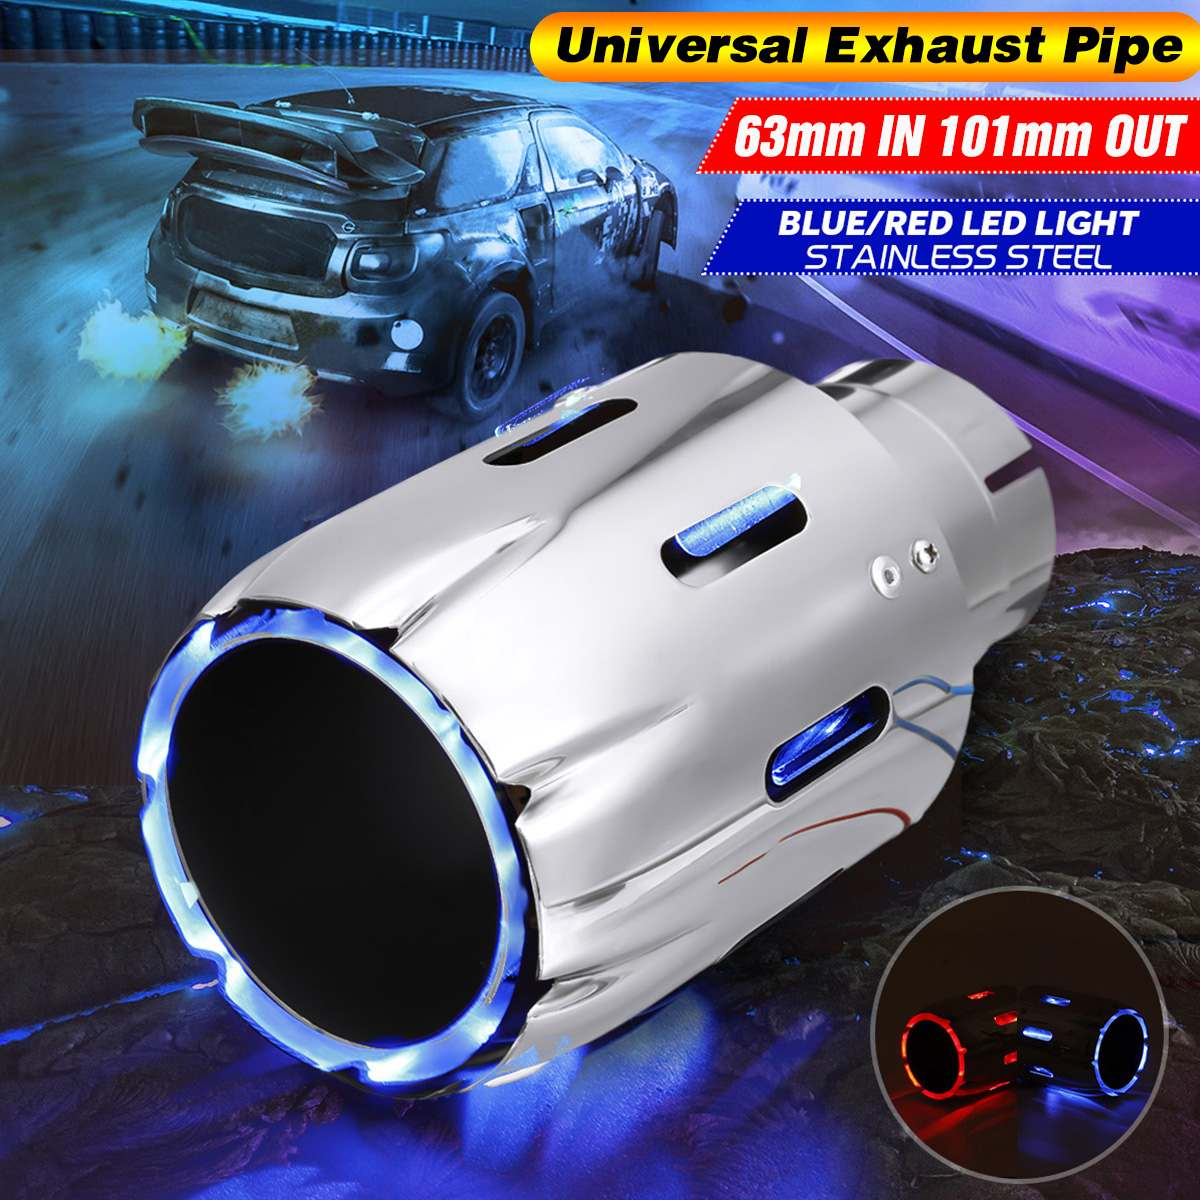 Stainless Steel Exhaust Muffler Tip 63mm IN 101mm OUT W/ Blue Red LED Light Clamp-on